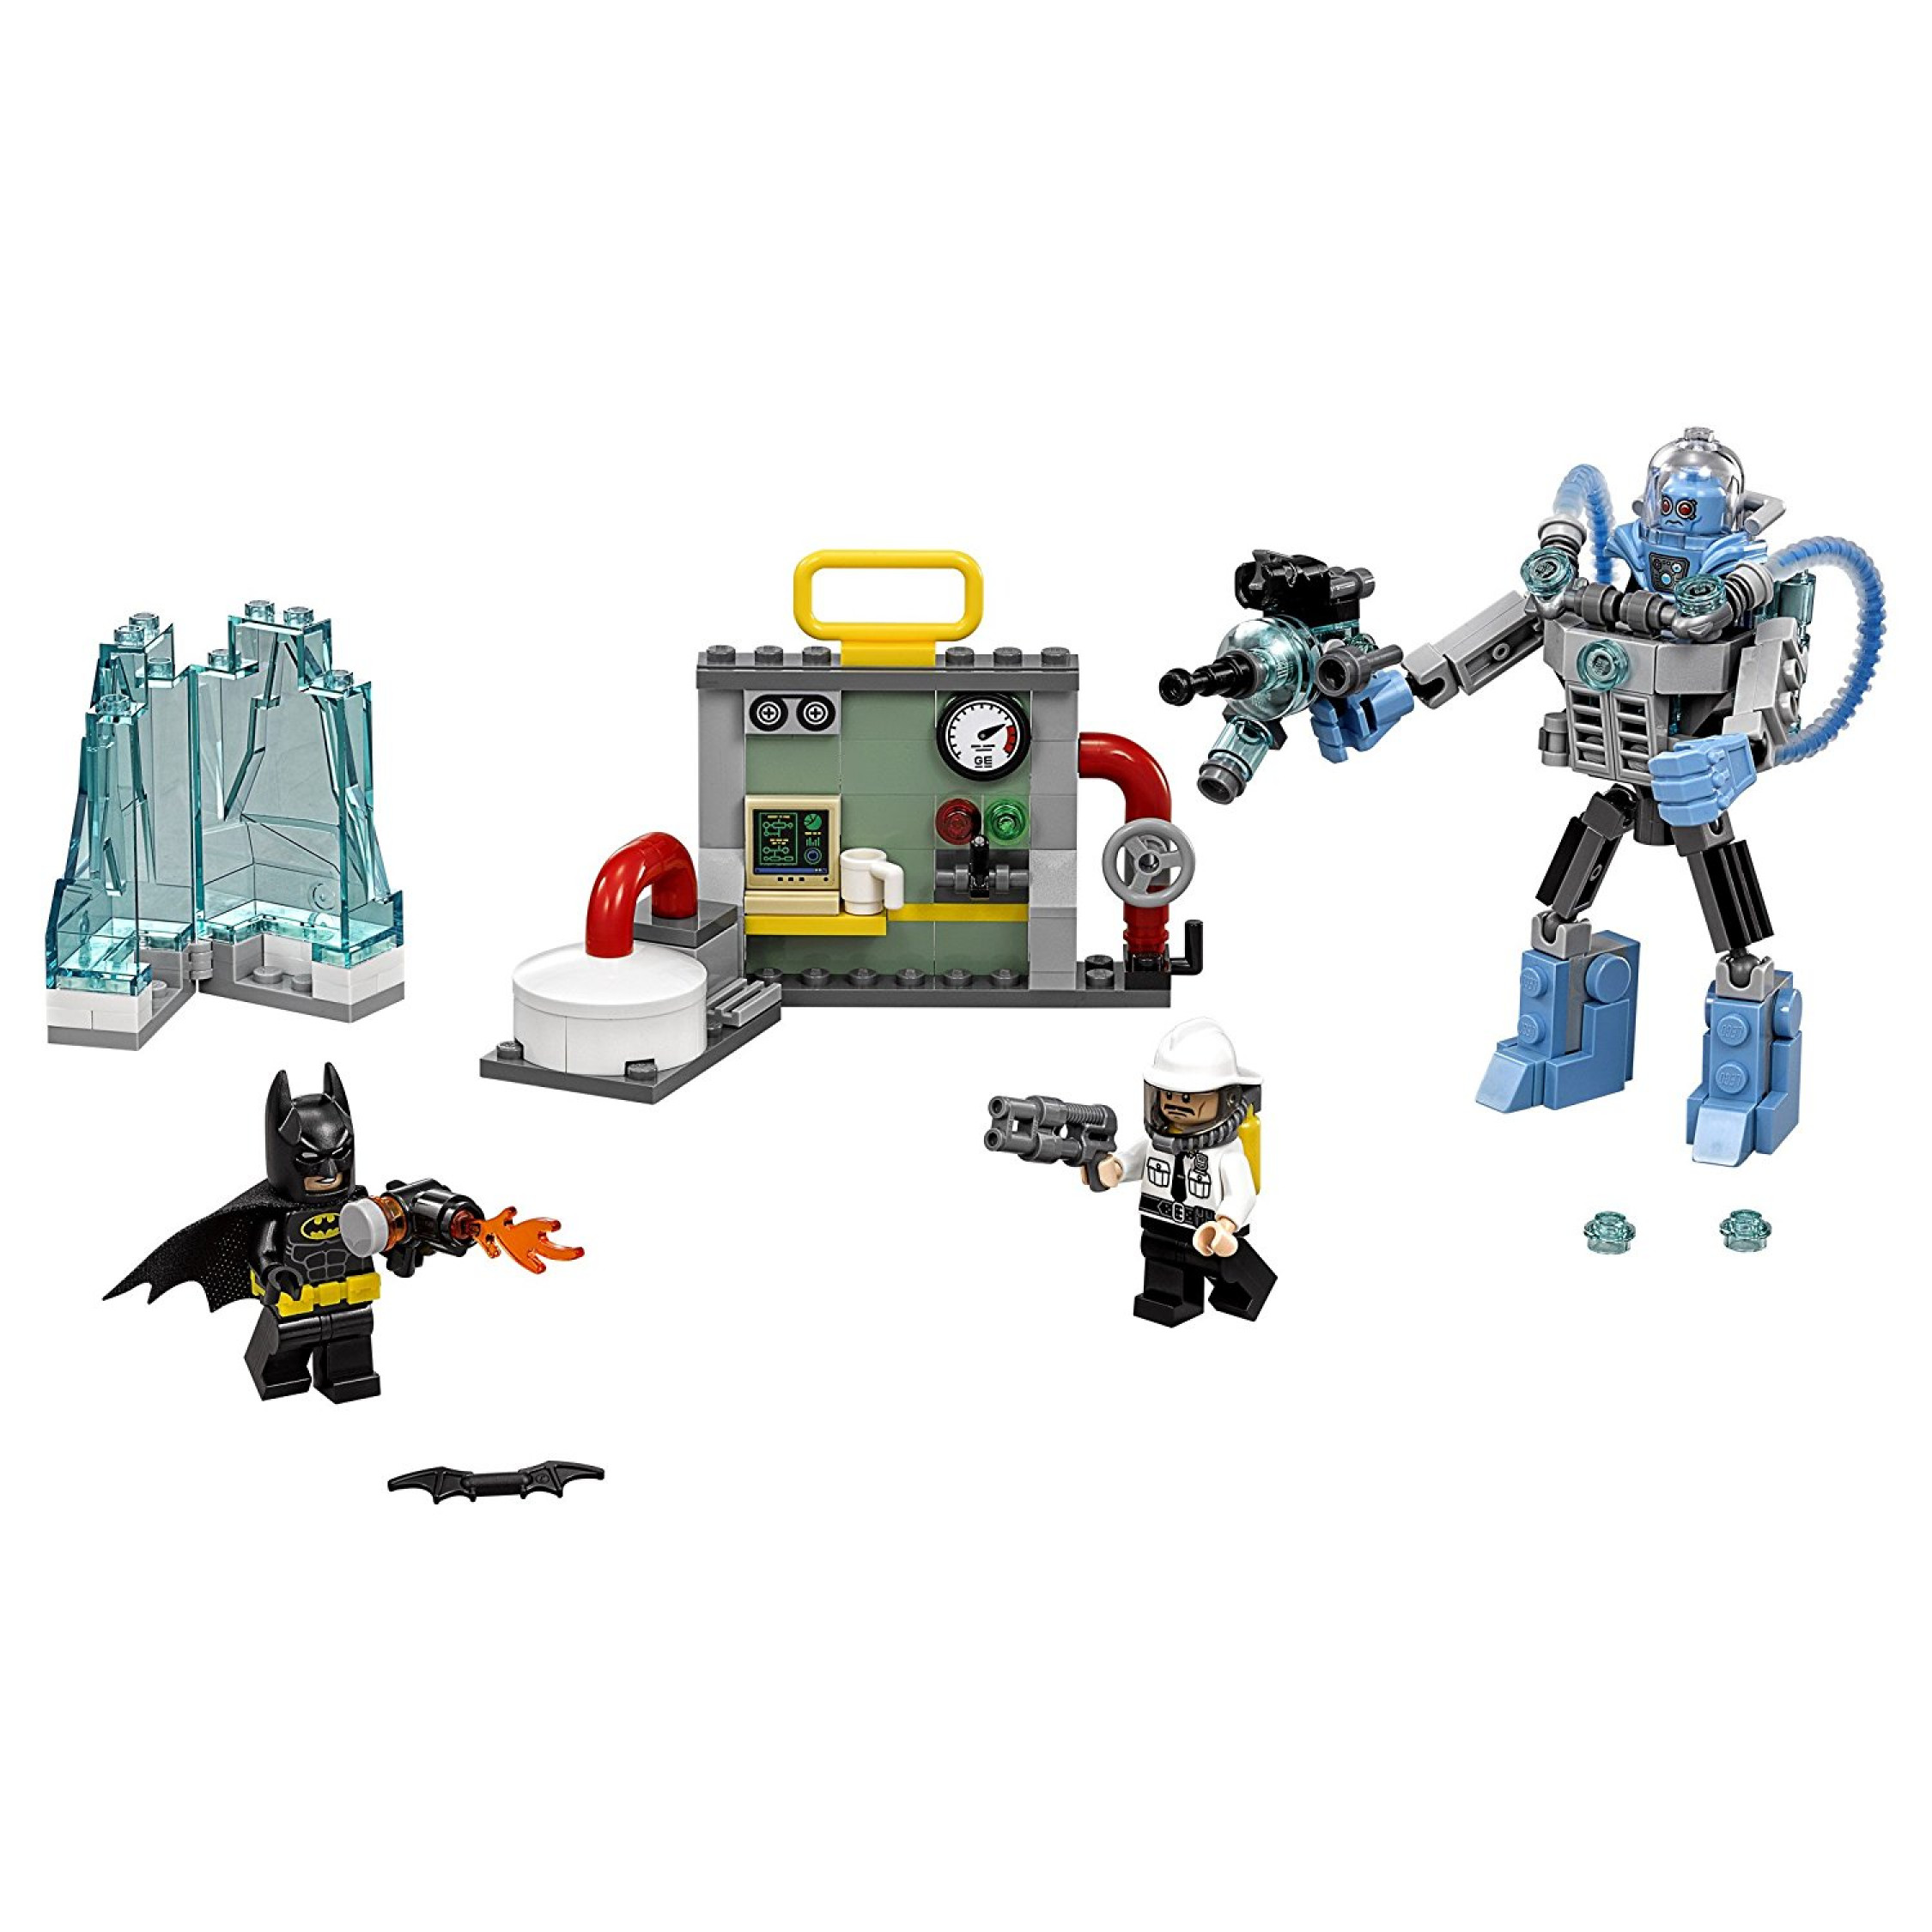 DC ics Lego Batman Building Set The Mr Freeze Toy Boy Kids